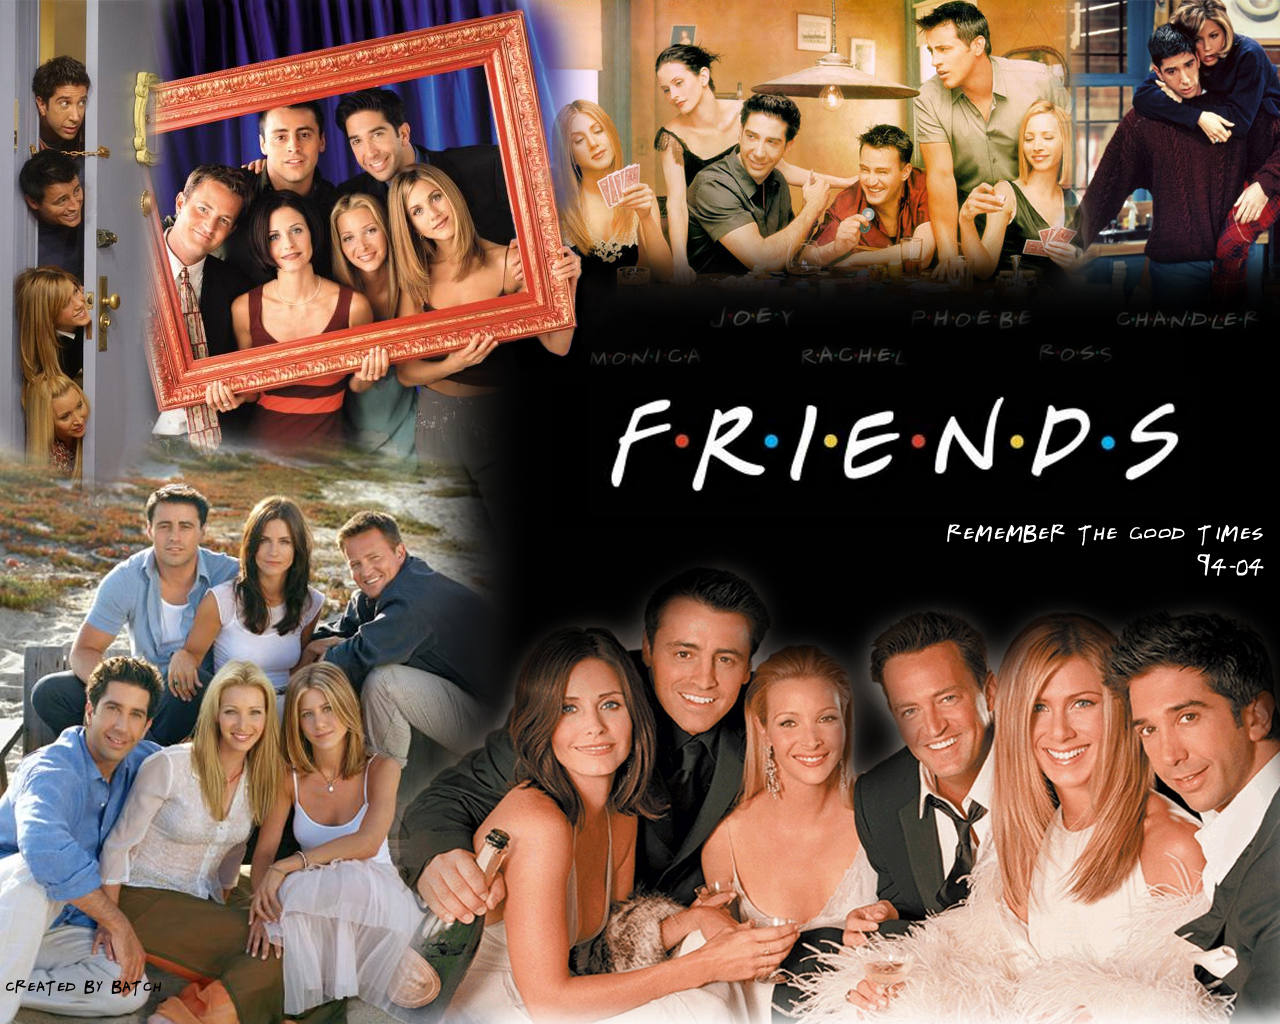 Friends Remember The Good Times 94 04 Friends Wallpaper